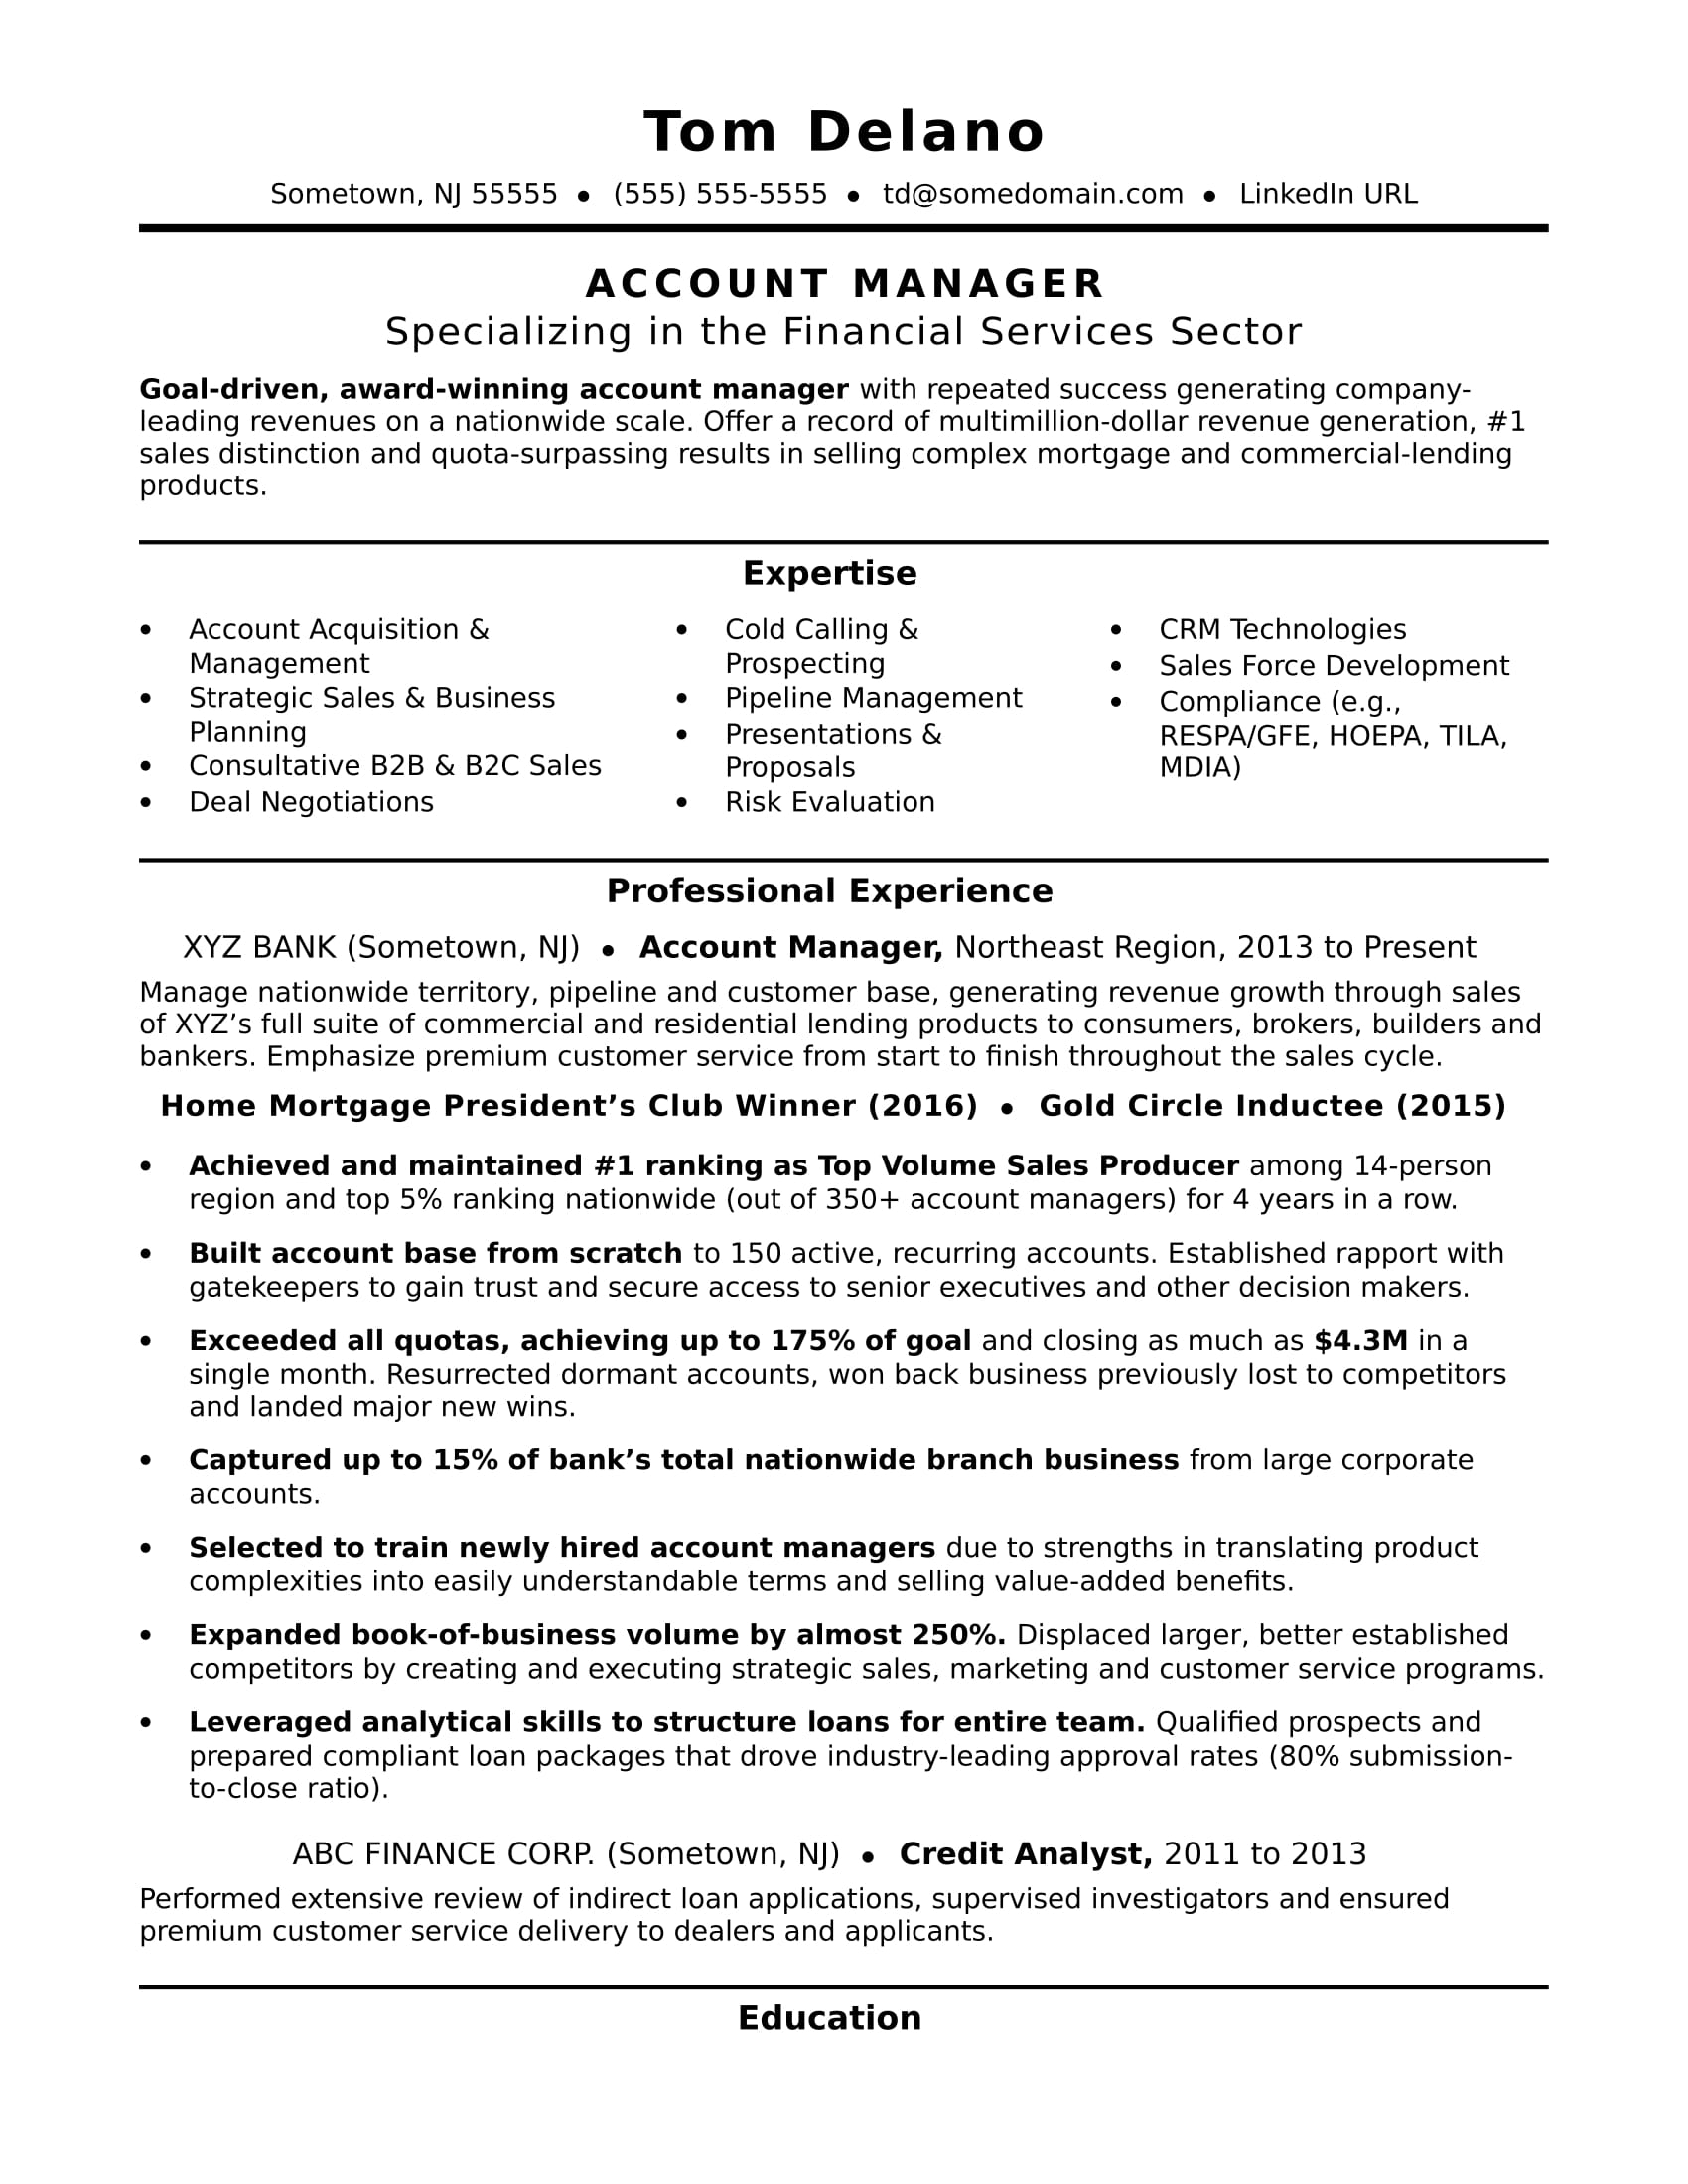 account manager resume sample monster responsibilities daycare objective member service Resume Account Manager Responsibilities Resume